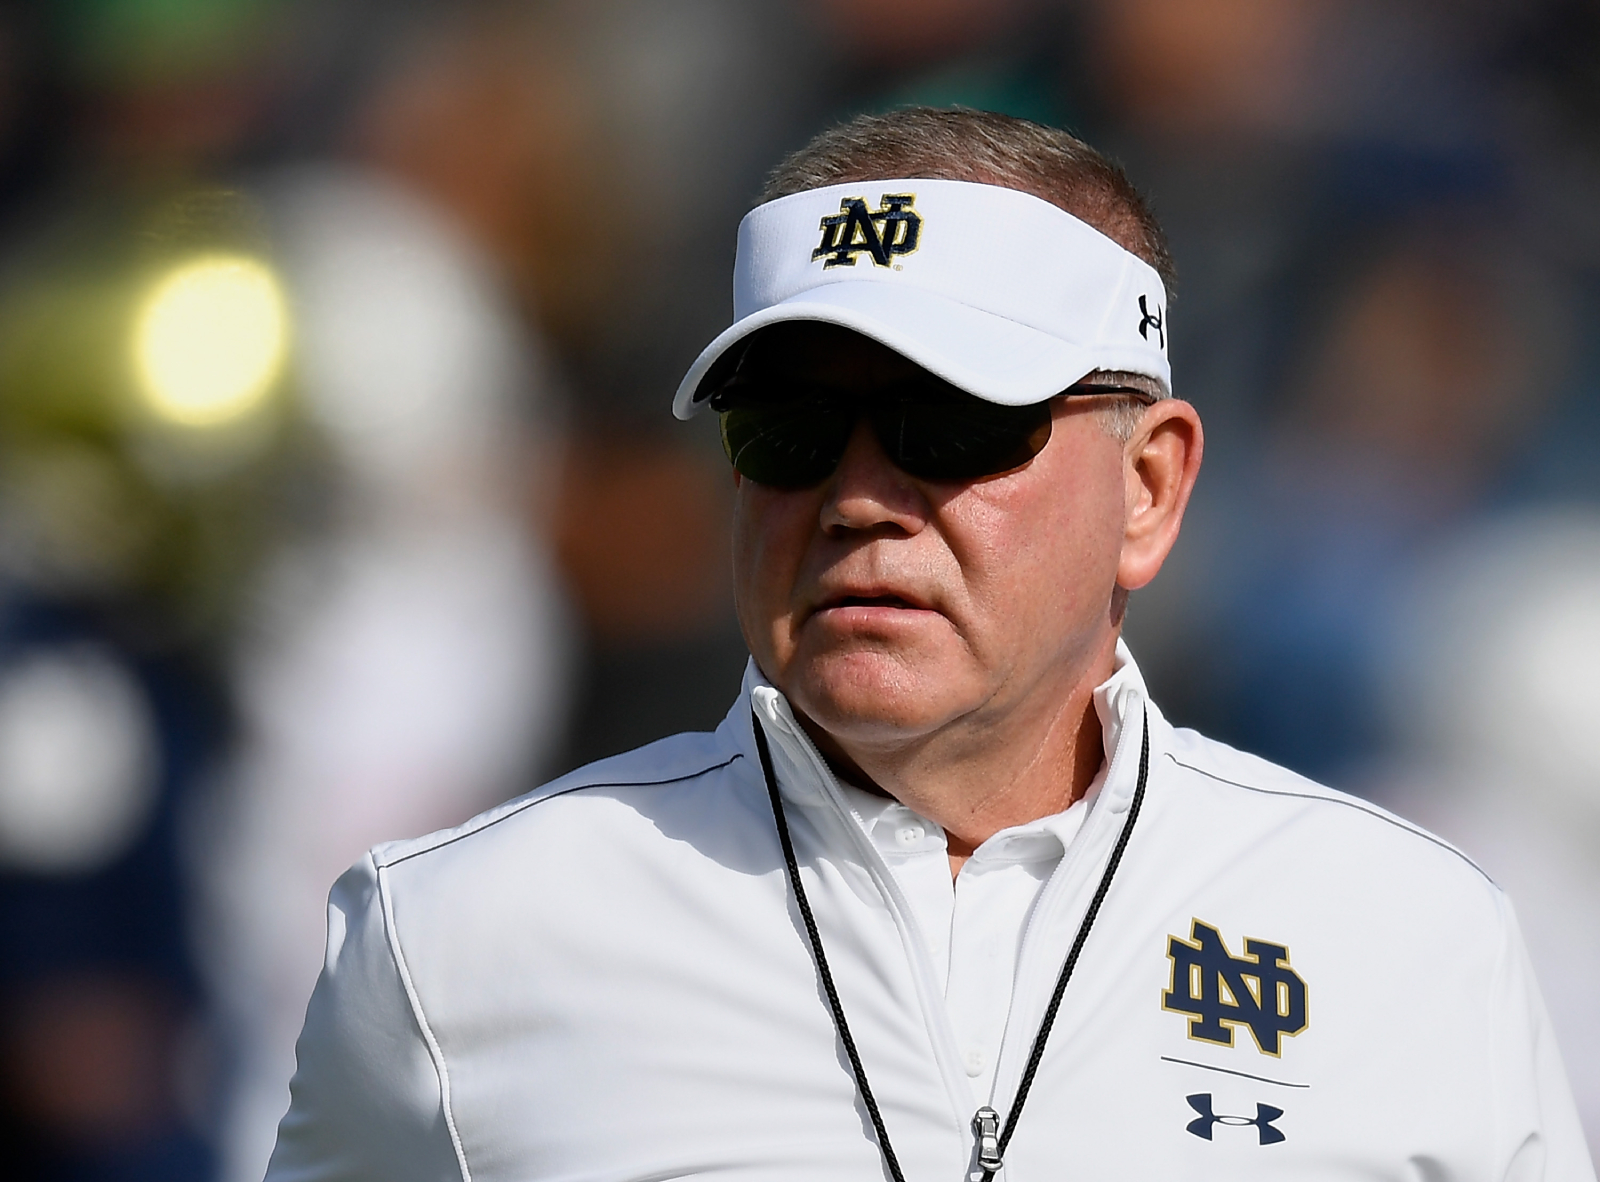 Brian Kelly has had a lot of success at Notre Dame. However, before going to UND, he pissed off his former Cincinnati Bearcats team.